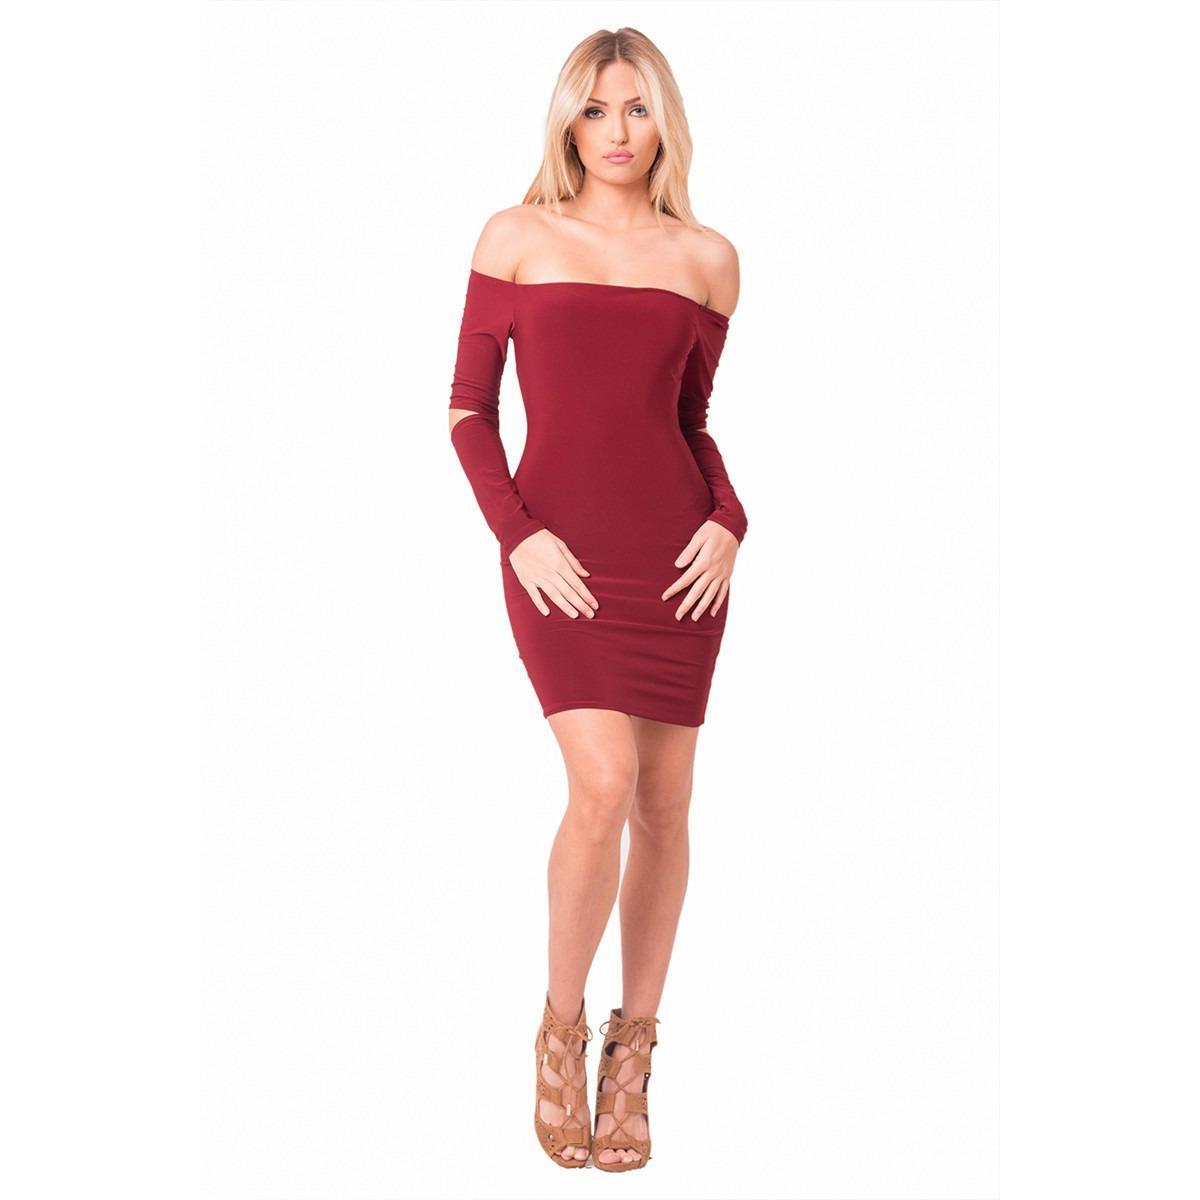 Becca Lover Girl Dress - Dime Piece Clothing